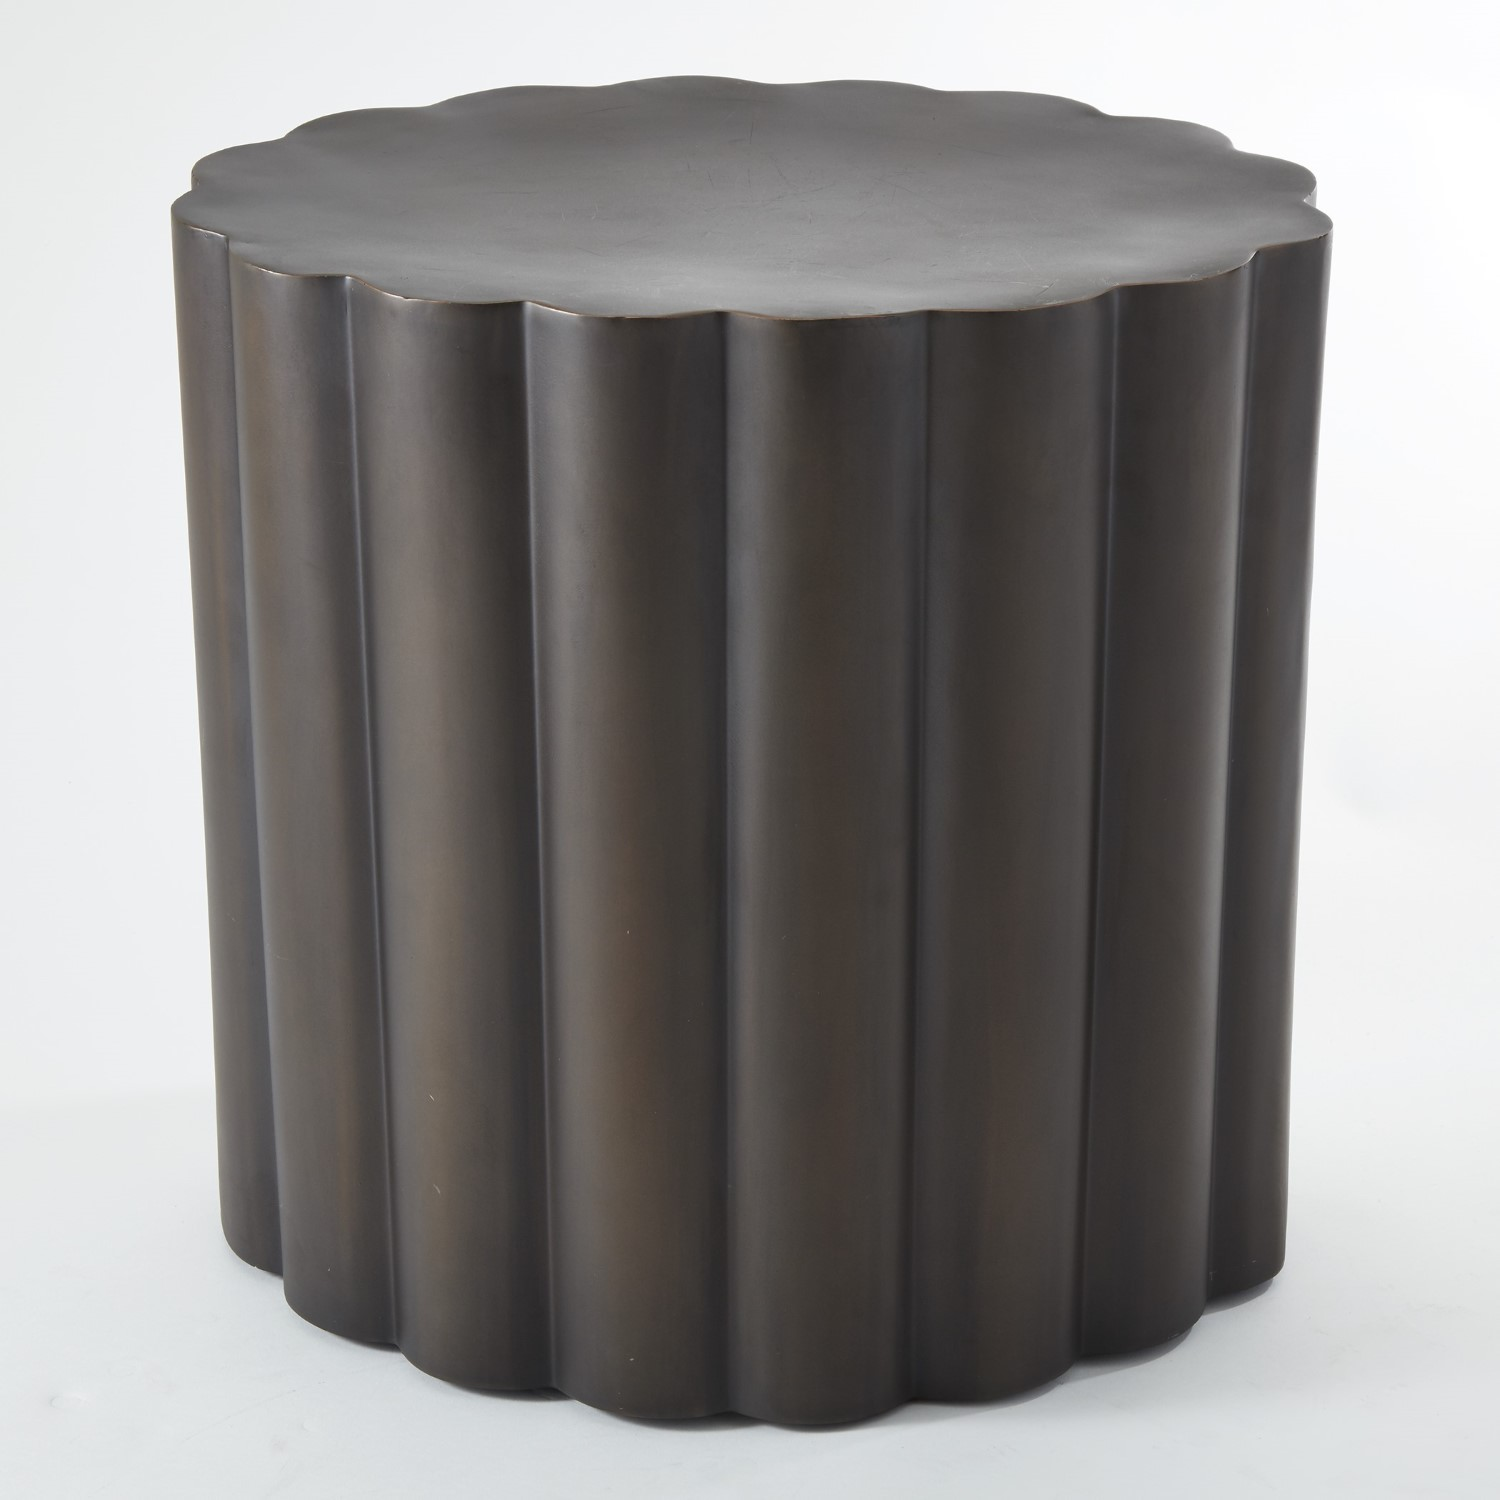 Fluted table antique bronze finish